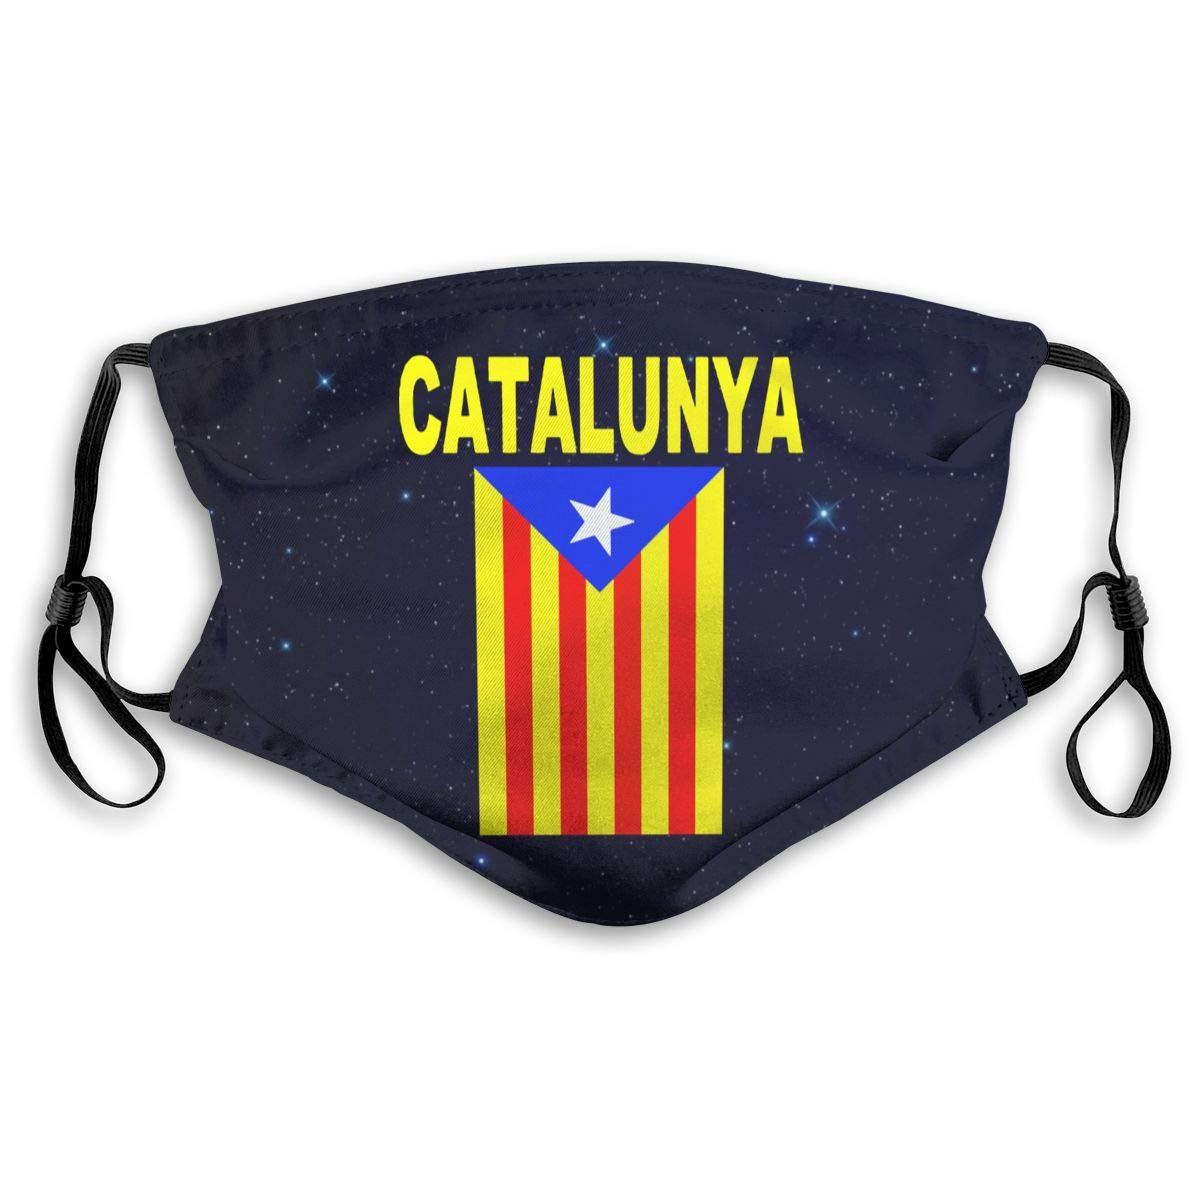 Flag Catalonia Mouth Cover Mask With PM2.5 Filters 5 Layers Of Protection For Unisex Black